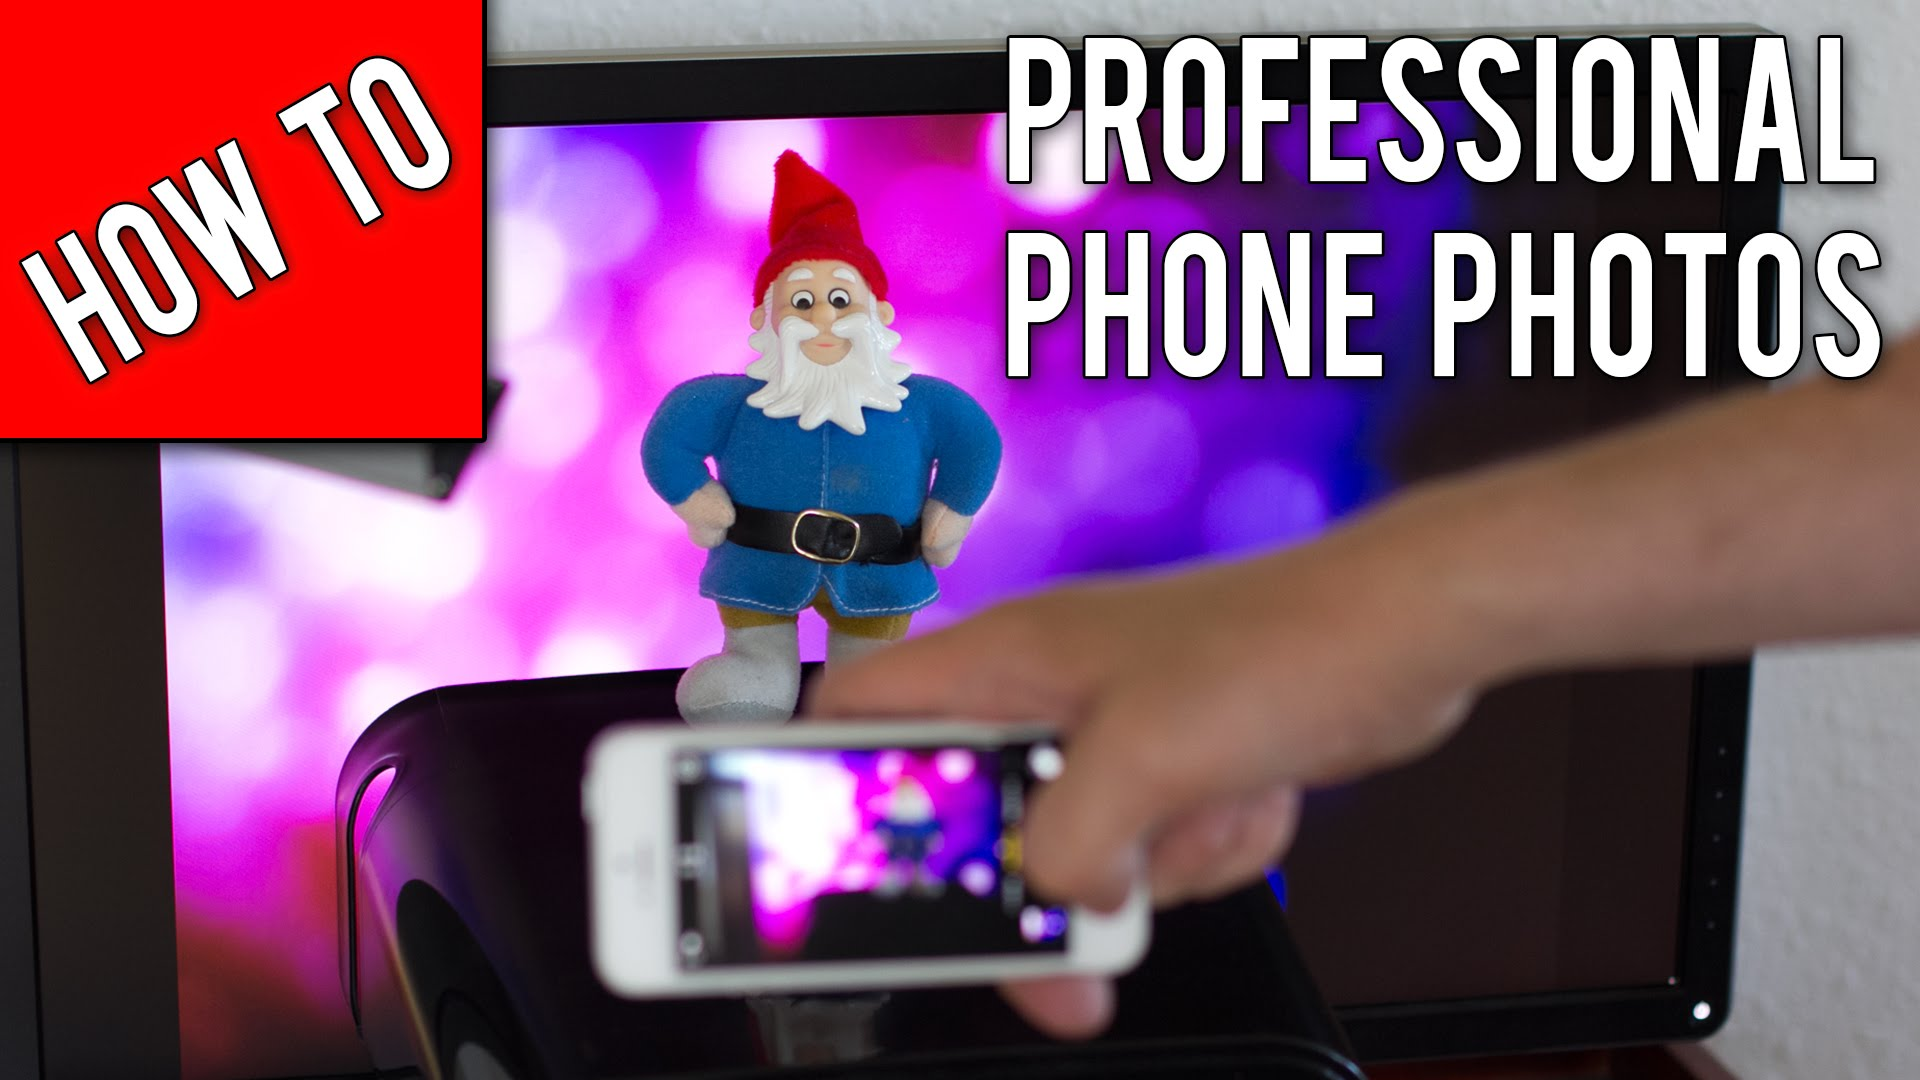 How to Take Professional Quality Photos With a Phone by Household Hacker